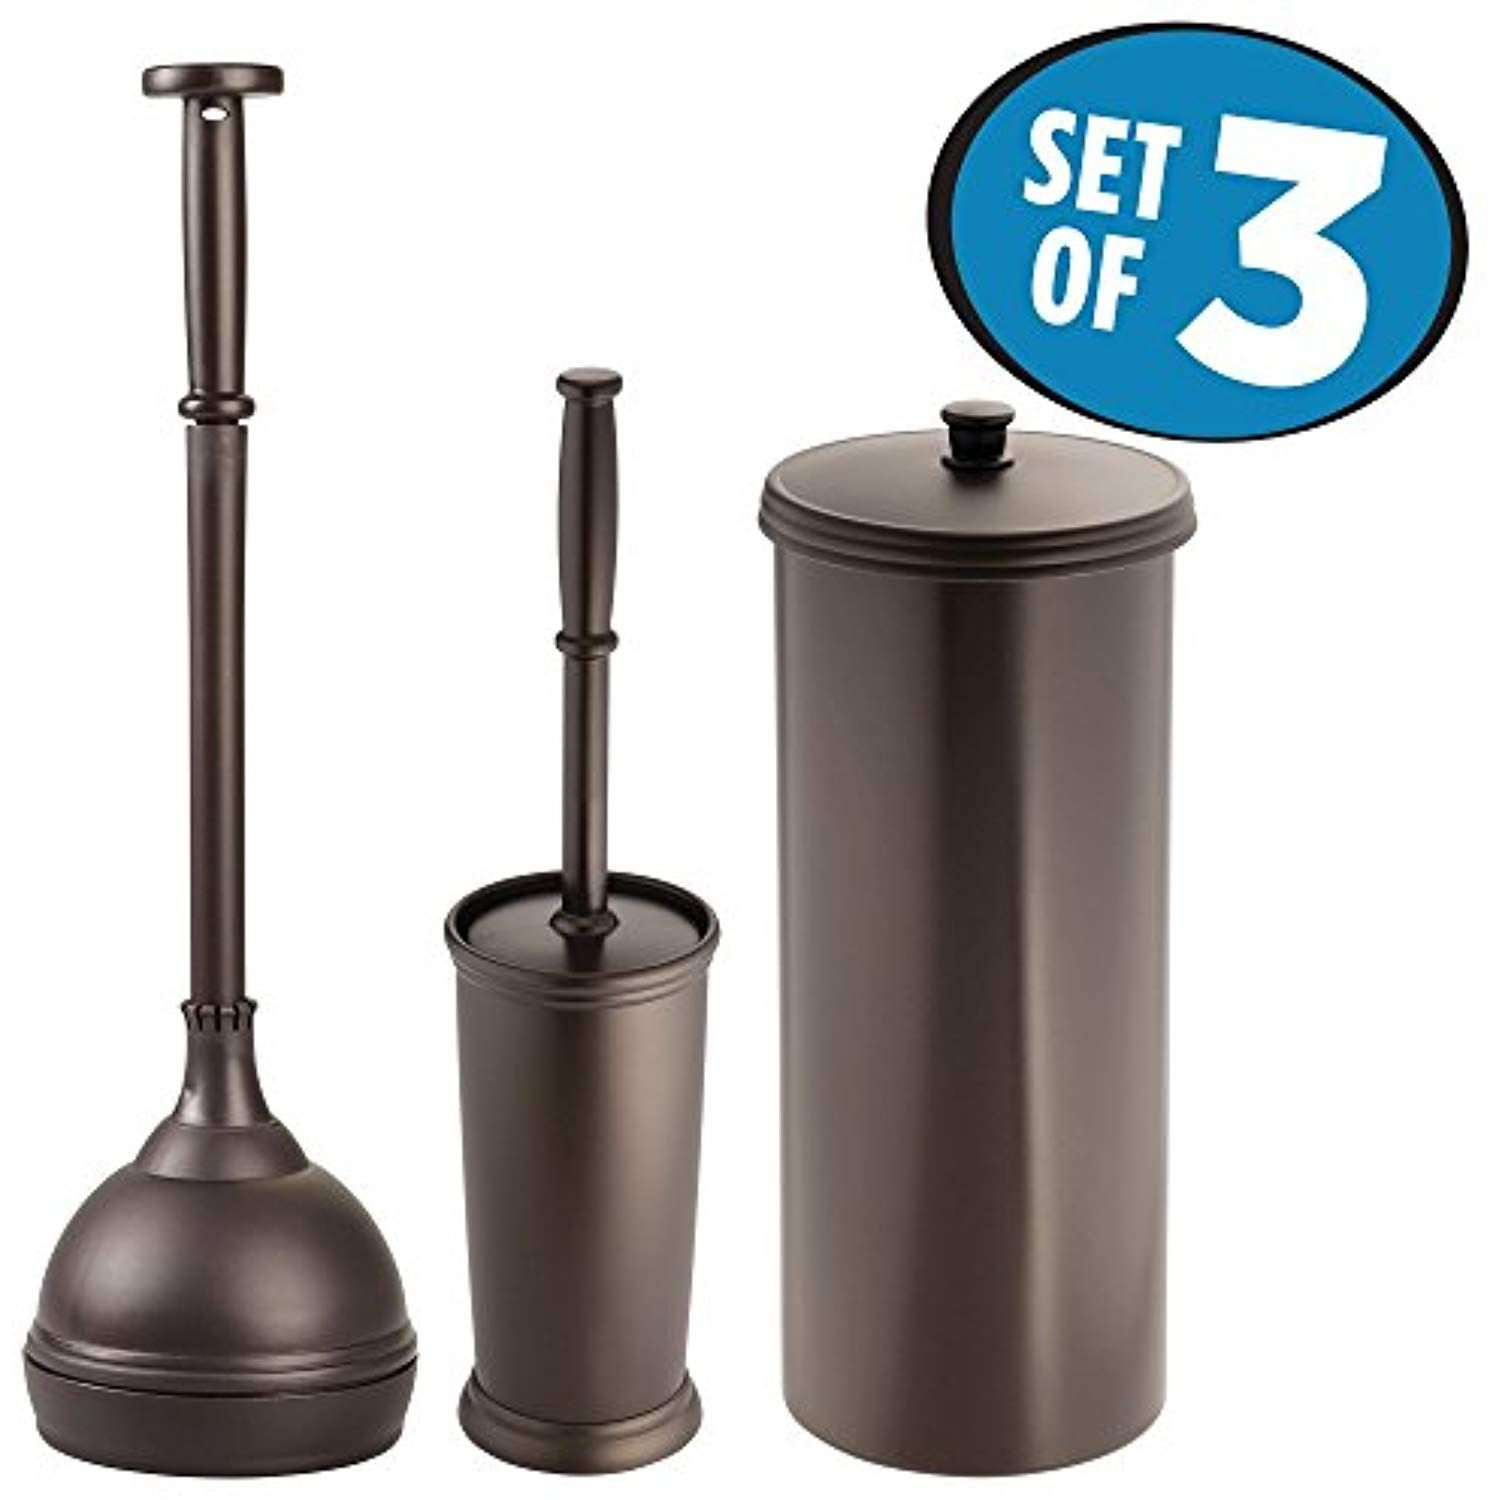 Mdesign Plunger Bowl Brush Toilet Paper Roll Canister And Toilet Brush Bathroom Accessory Set Pack Of 3 Bro Canister Sets Plunger Bathroom Accessories Sets